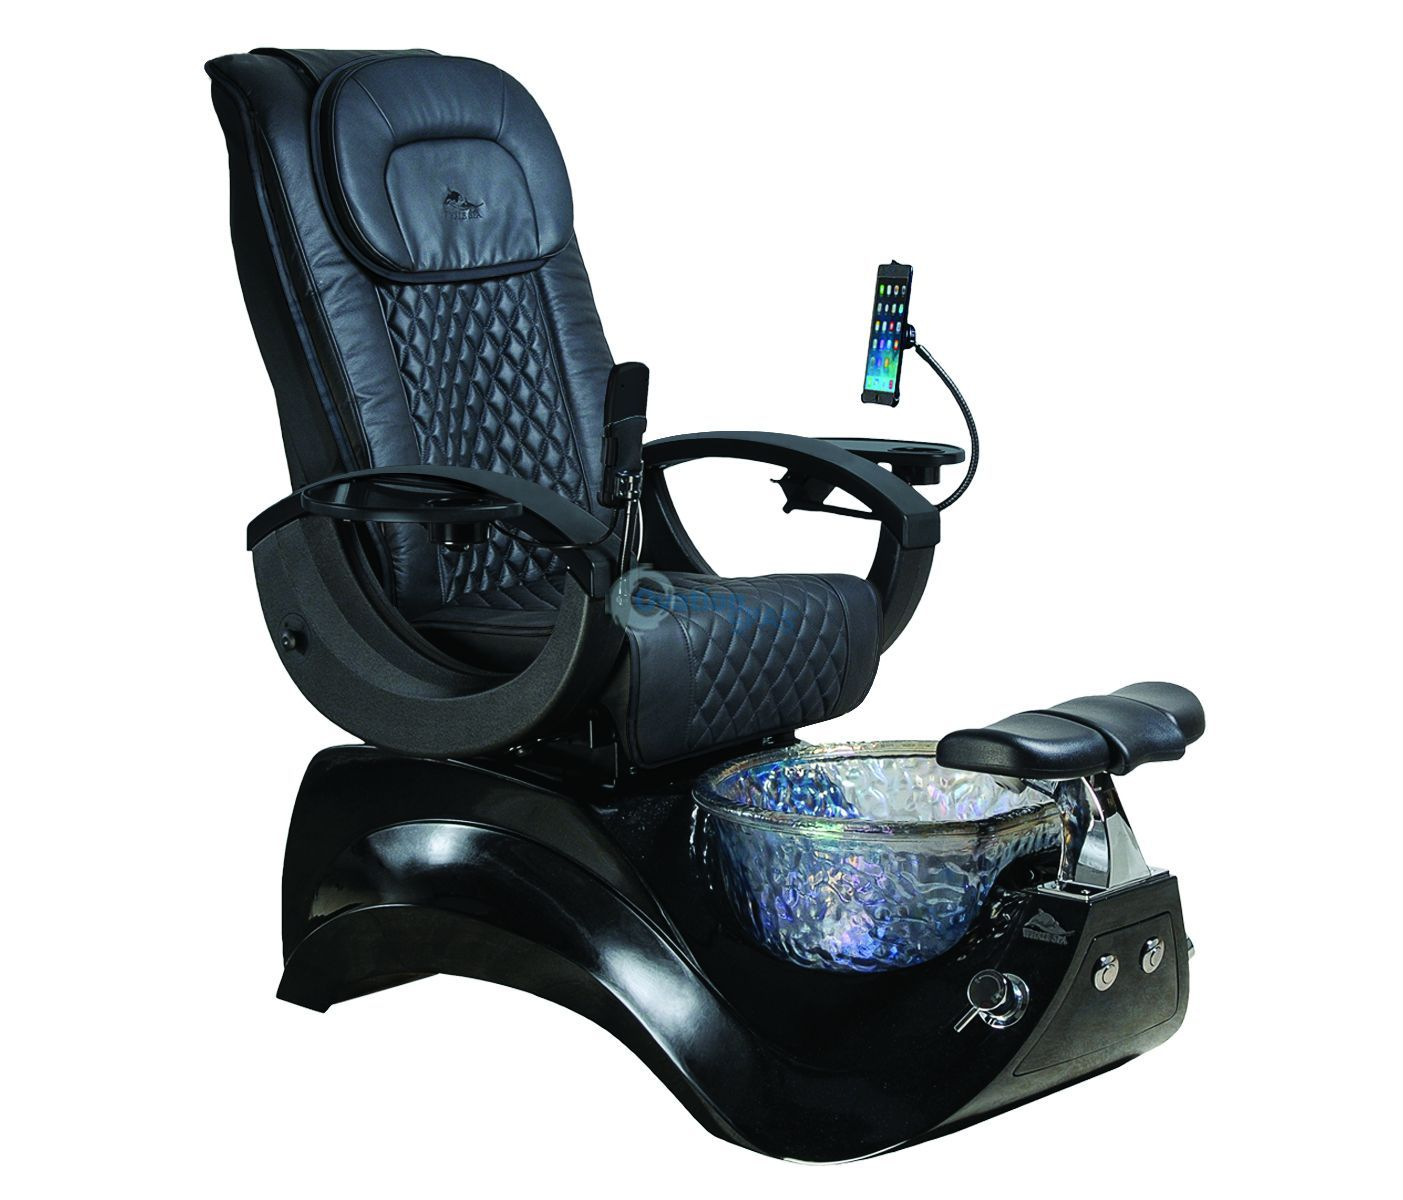 stella built foot product in chairs soak htm mpst chair p pedicure